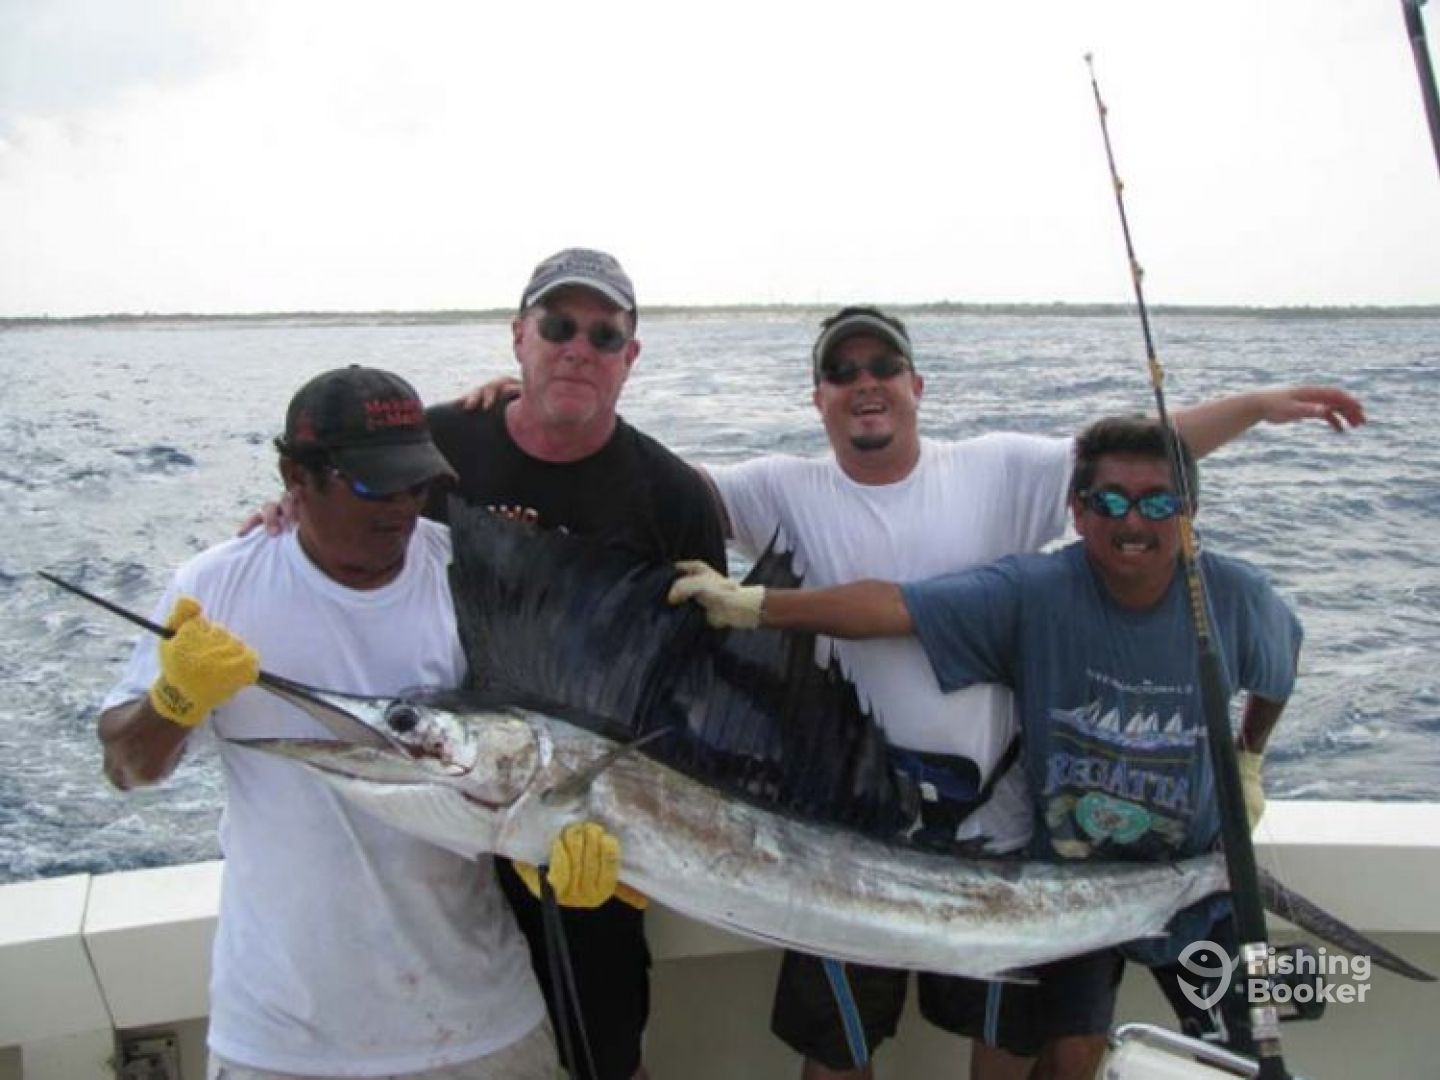 Captain rick s 35 my obsession puerto aventuras for Obsession fishing charters